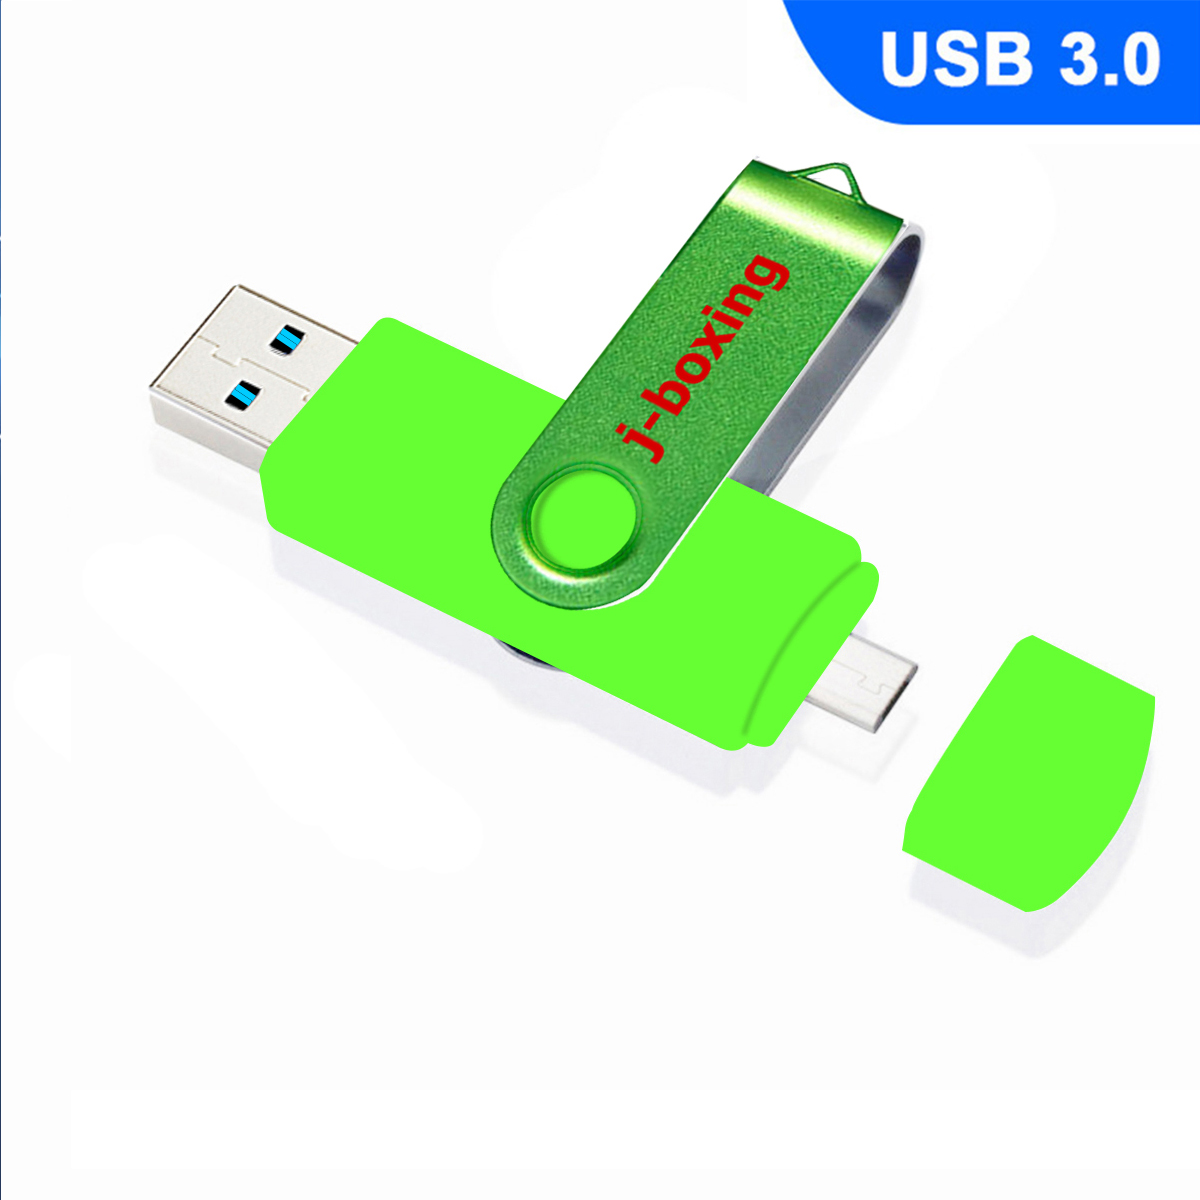 128GB USB 3.0 Metal Flash Drive 3in1 OTG Memory Stick for iPhone Tablet Samsung